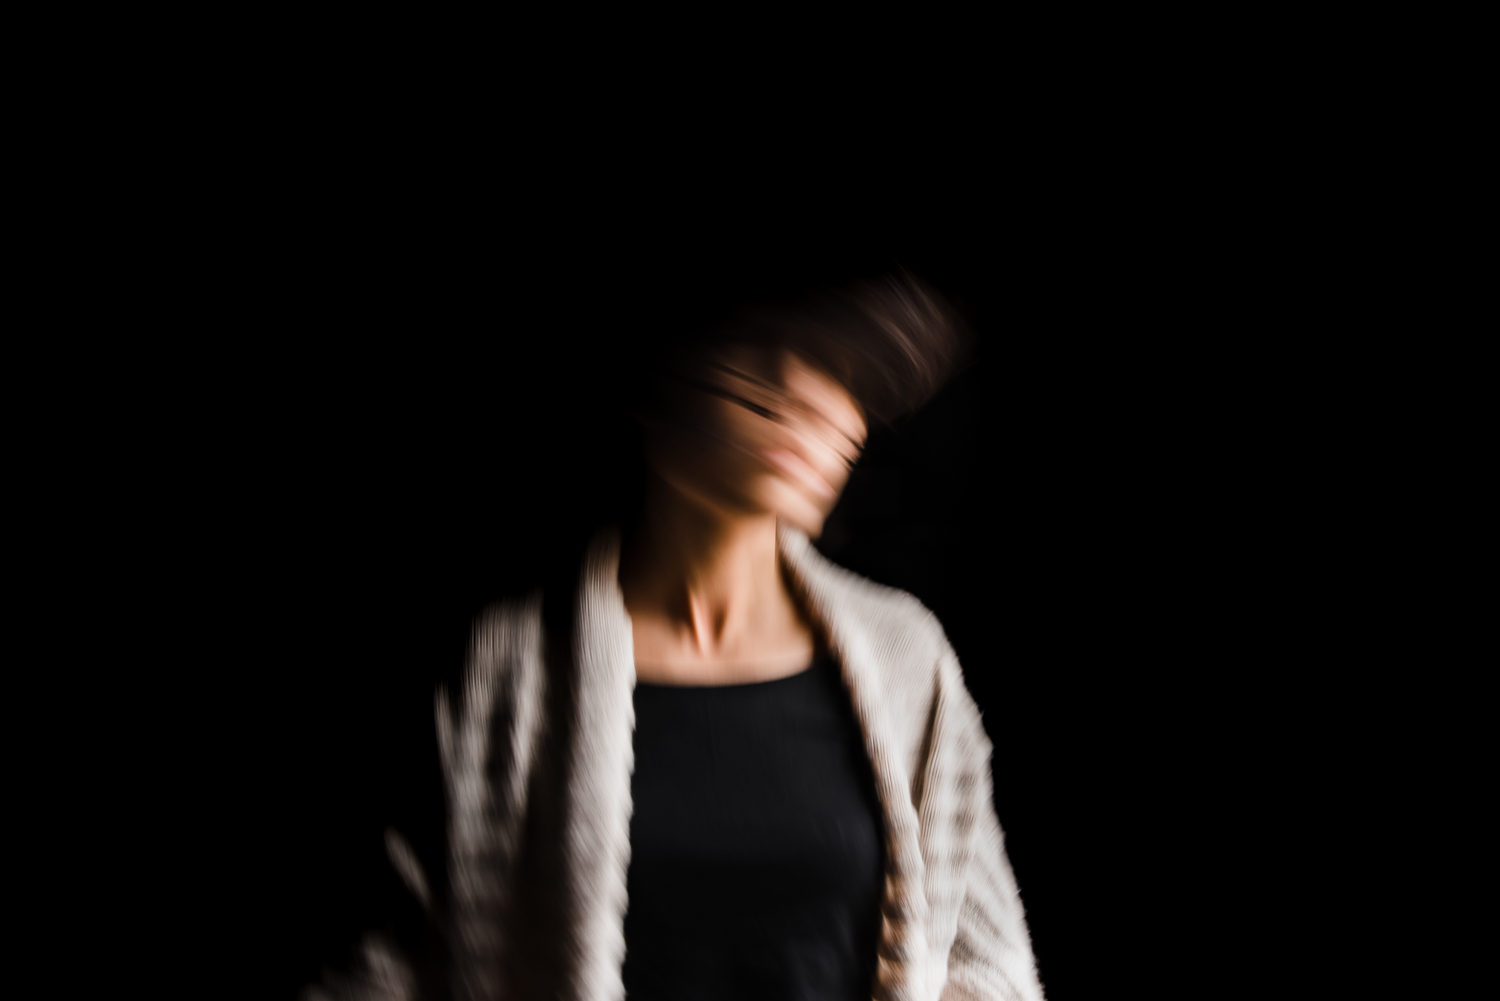 Self portrait taken with a slow shutter speed in natural light